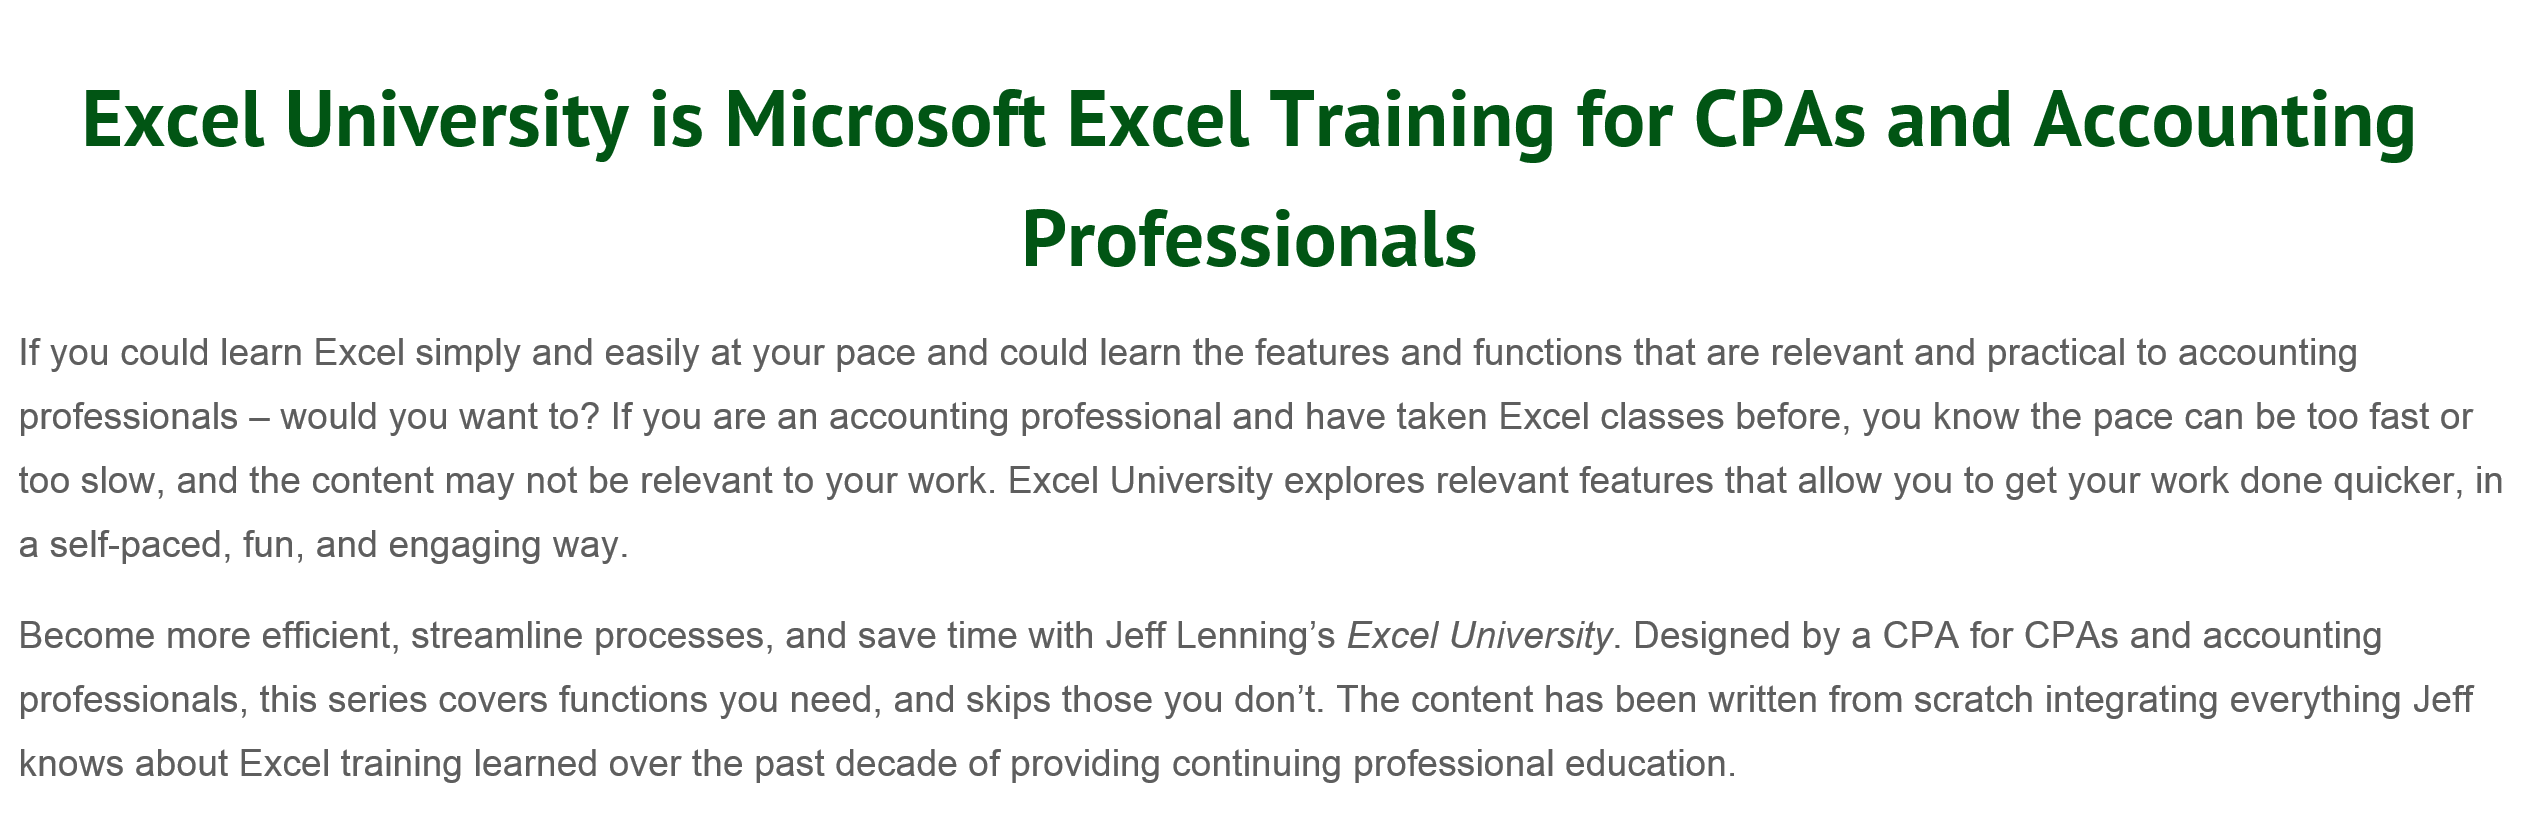 CPA's need CPE's, Jeff's Excel University offers CPE's via his free Excel Training webinars